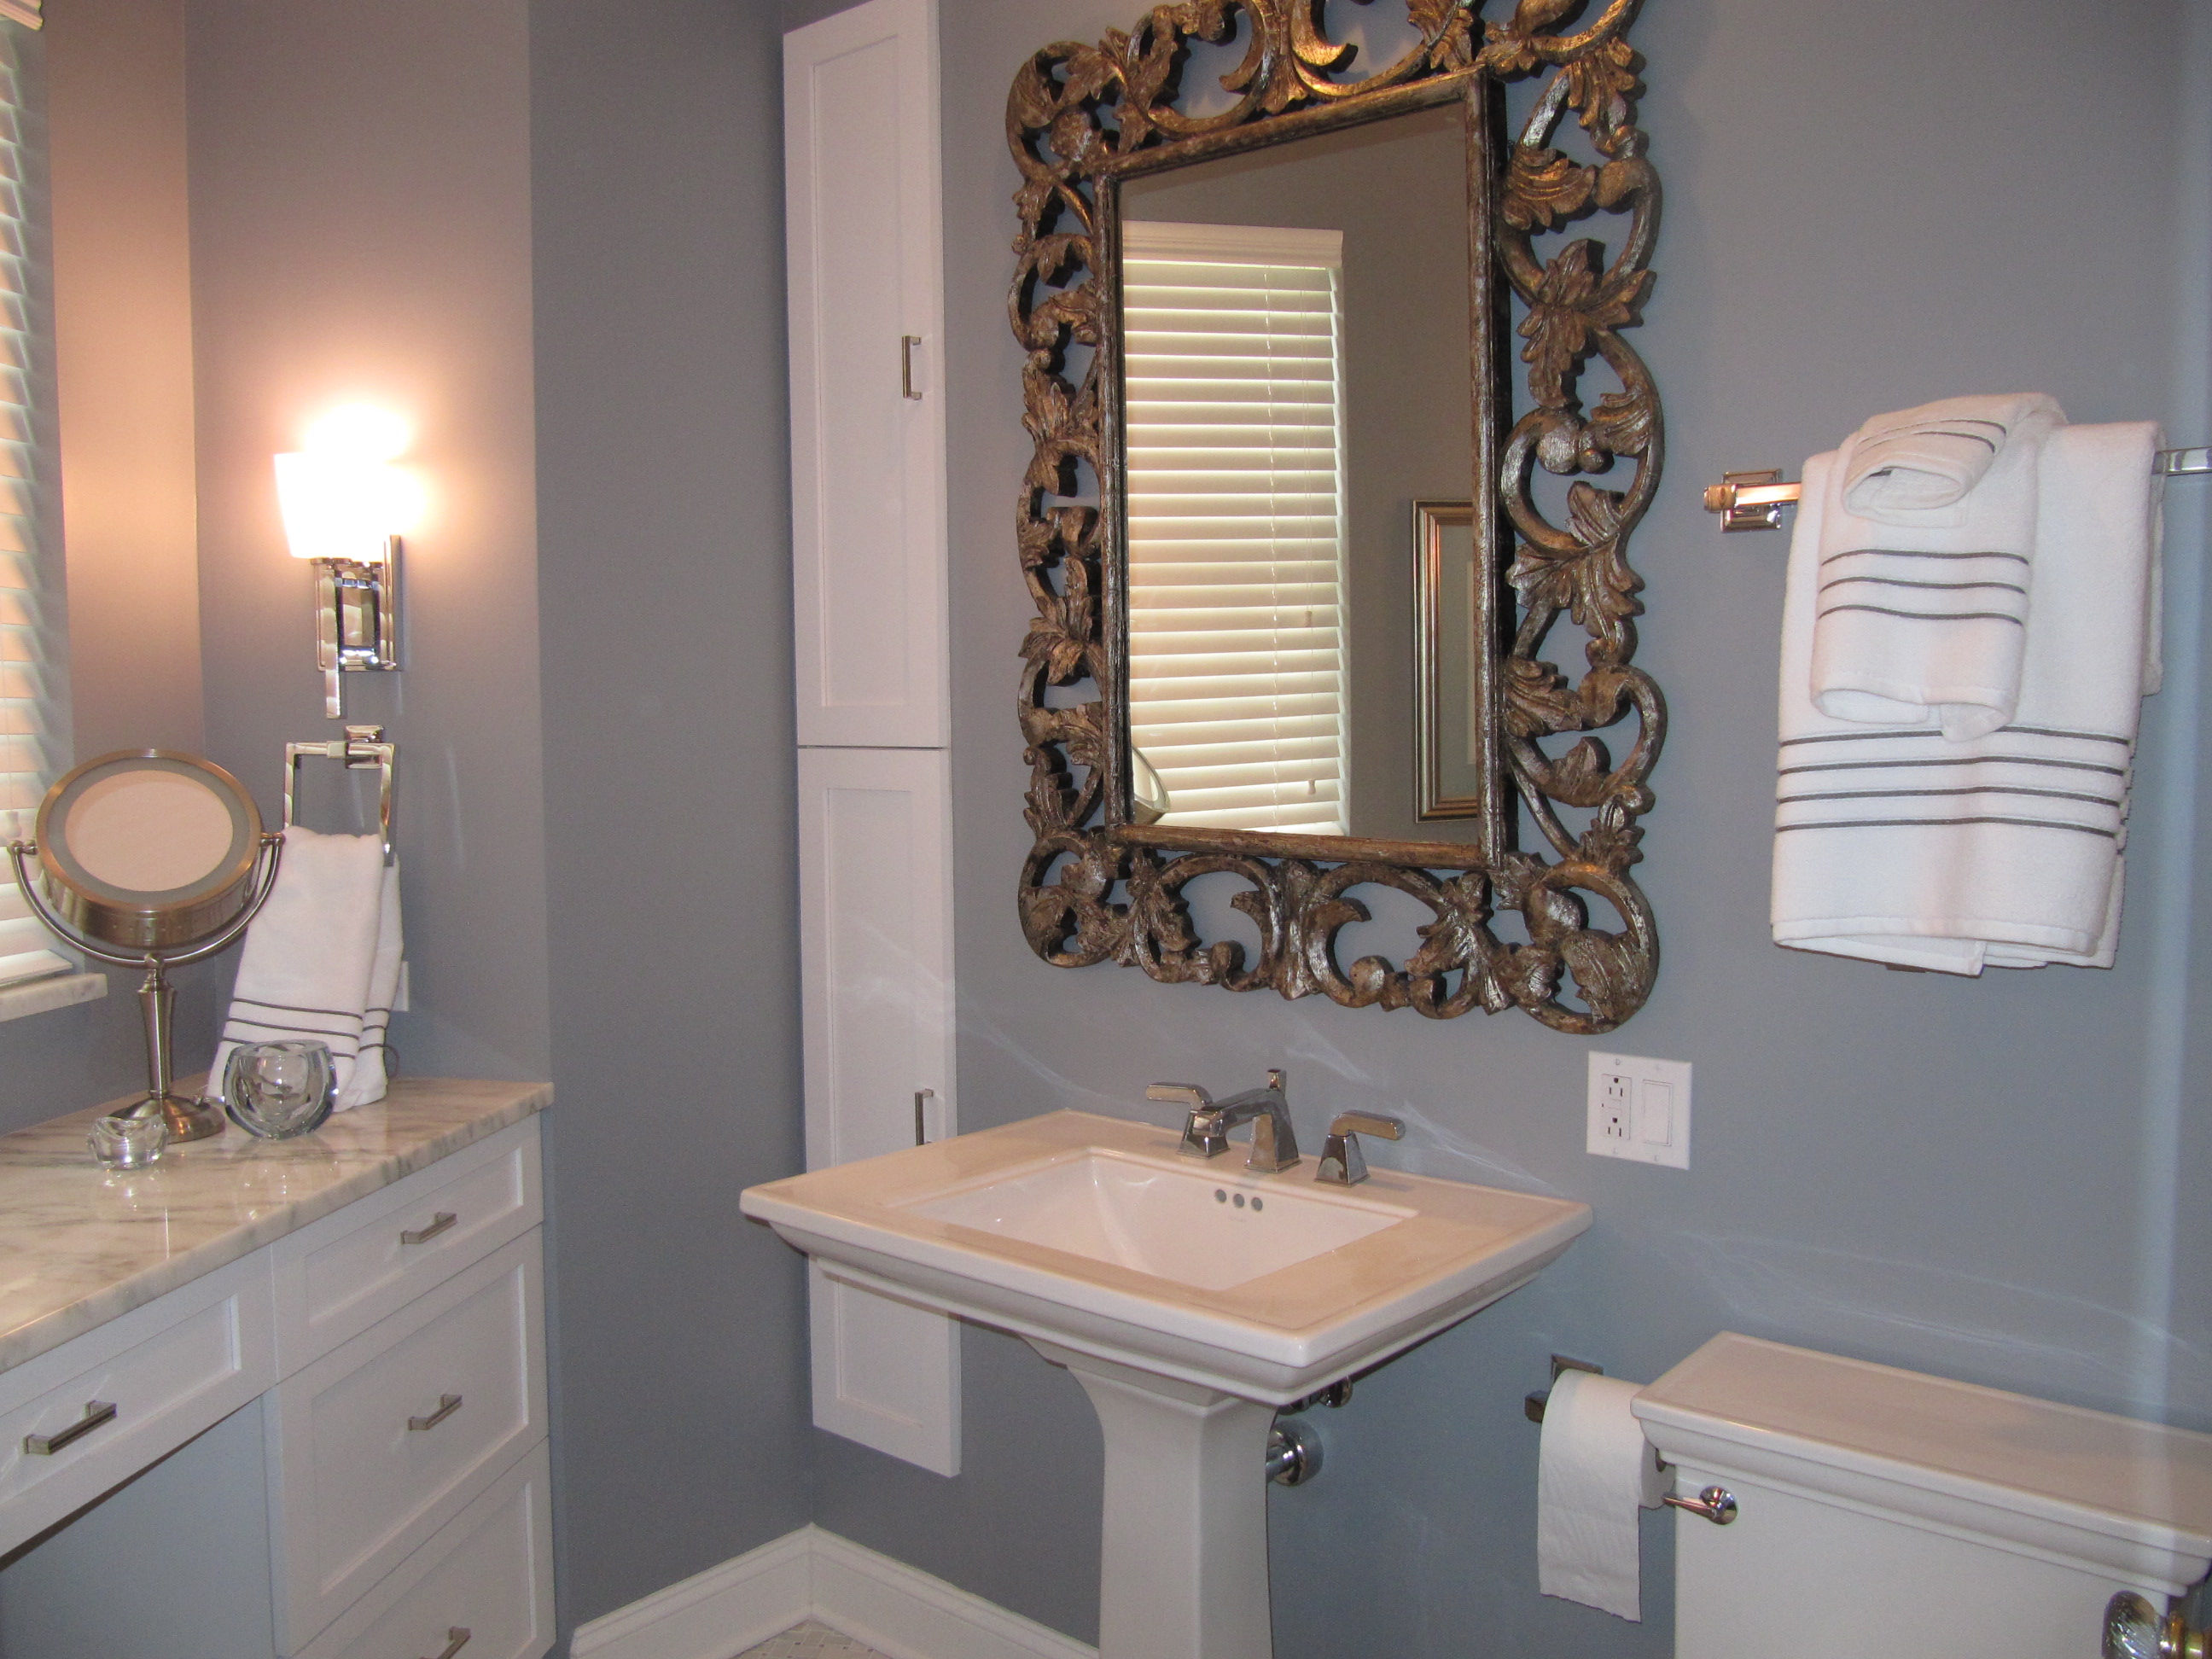 silver gilt mirror adds pizzazz to a classic bathroom